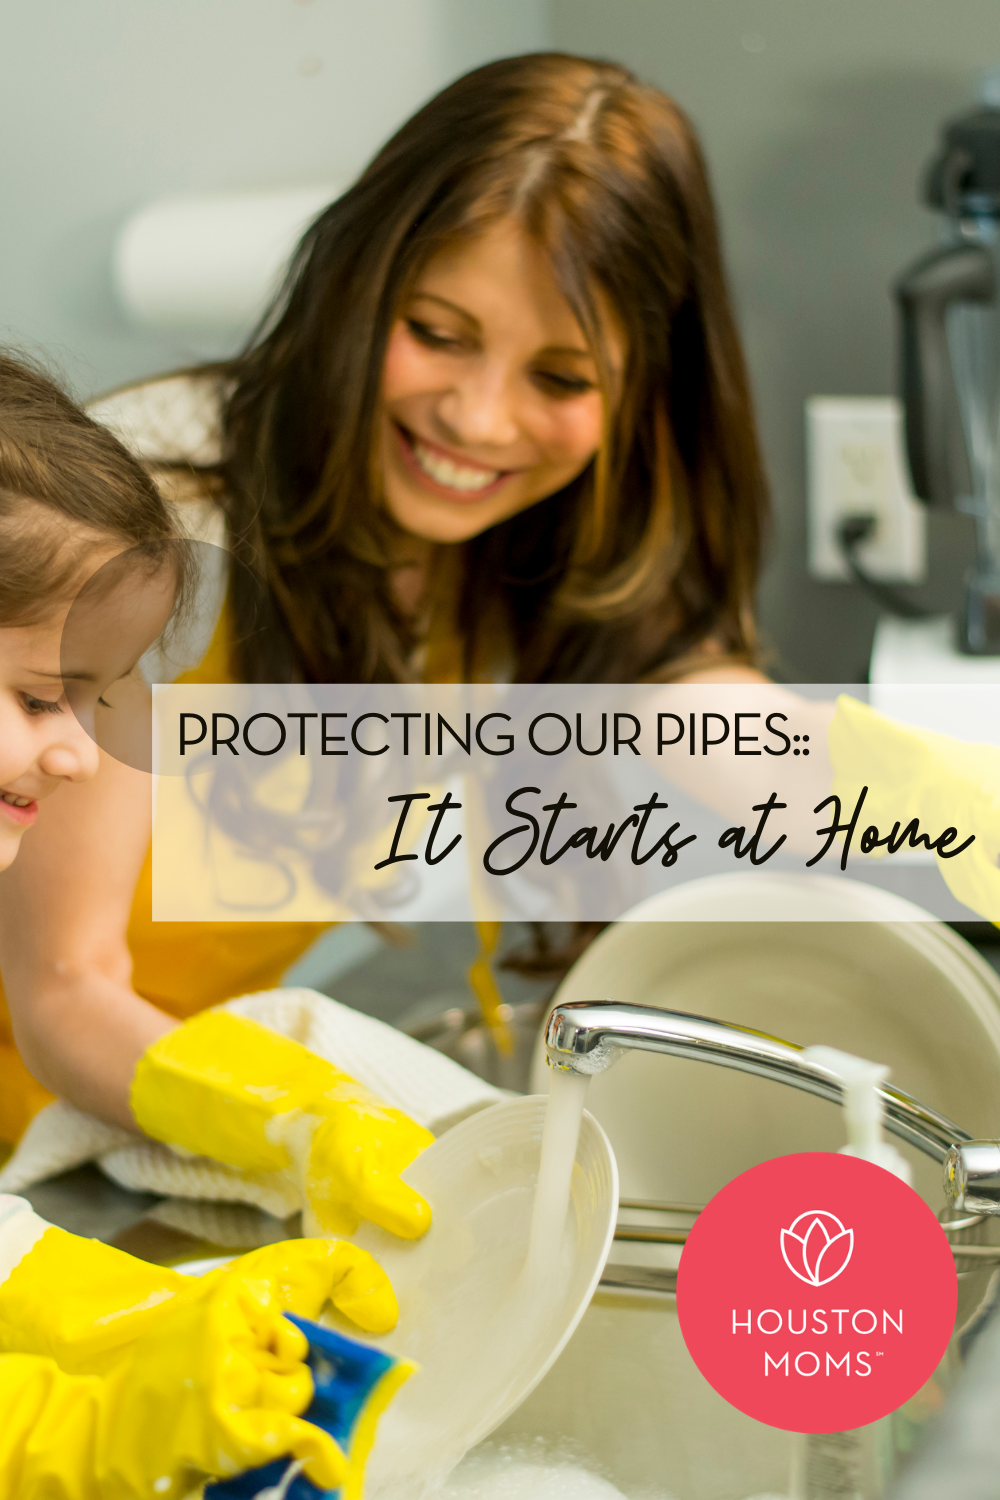 """Houston Moms """"Protecting Our Pipes:: It Starts at Home"""" #houstonmoms #houstonmomsblog #momsaroundhouston"""